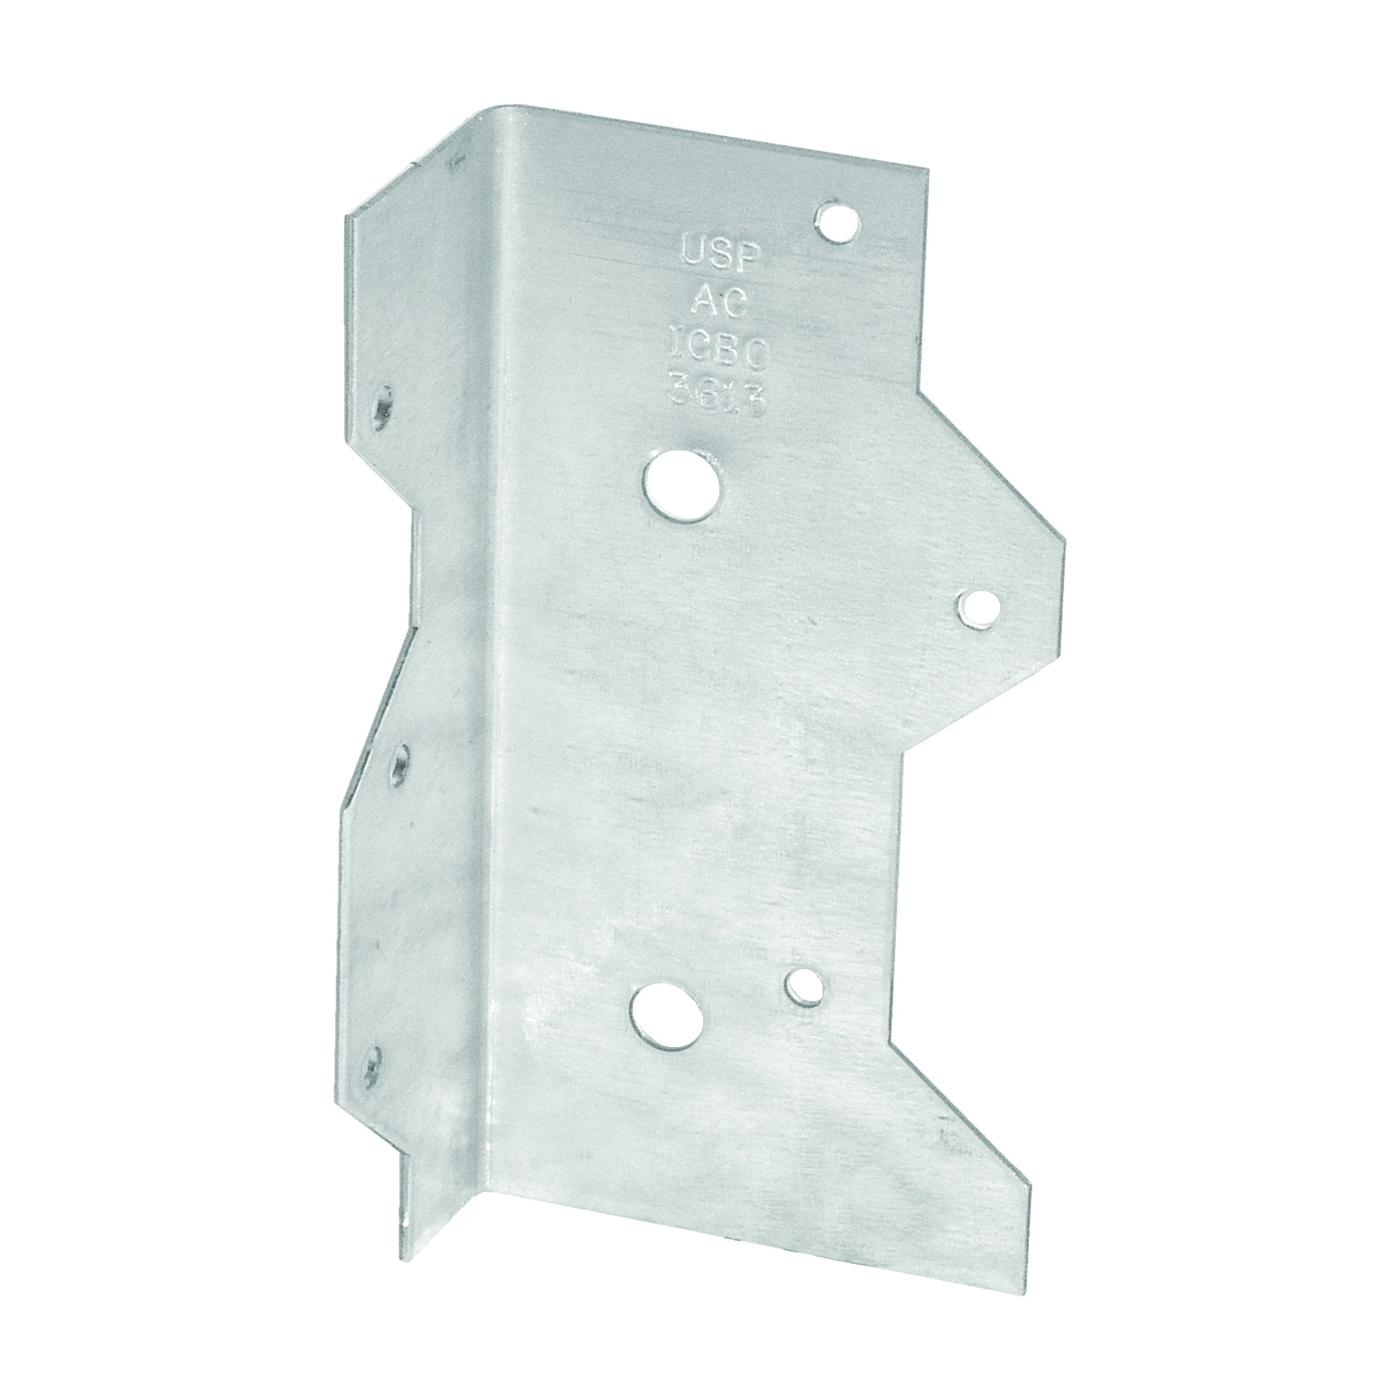 Picture of MiTek AC9-TZ Framing Angle, 1-5/16 in W, 2-3/8 in D, 8-7/8 in H, Steel, Zinc